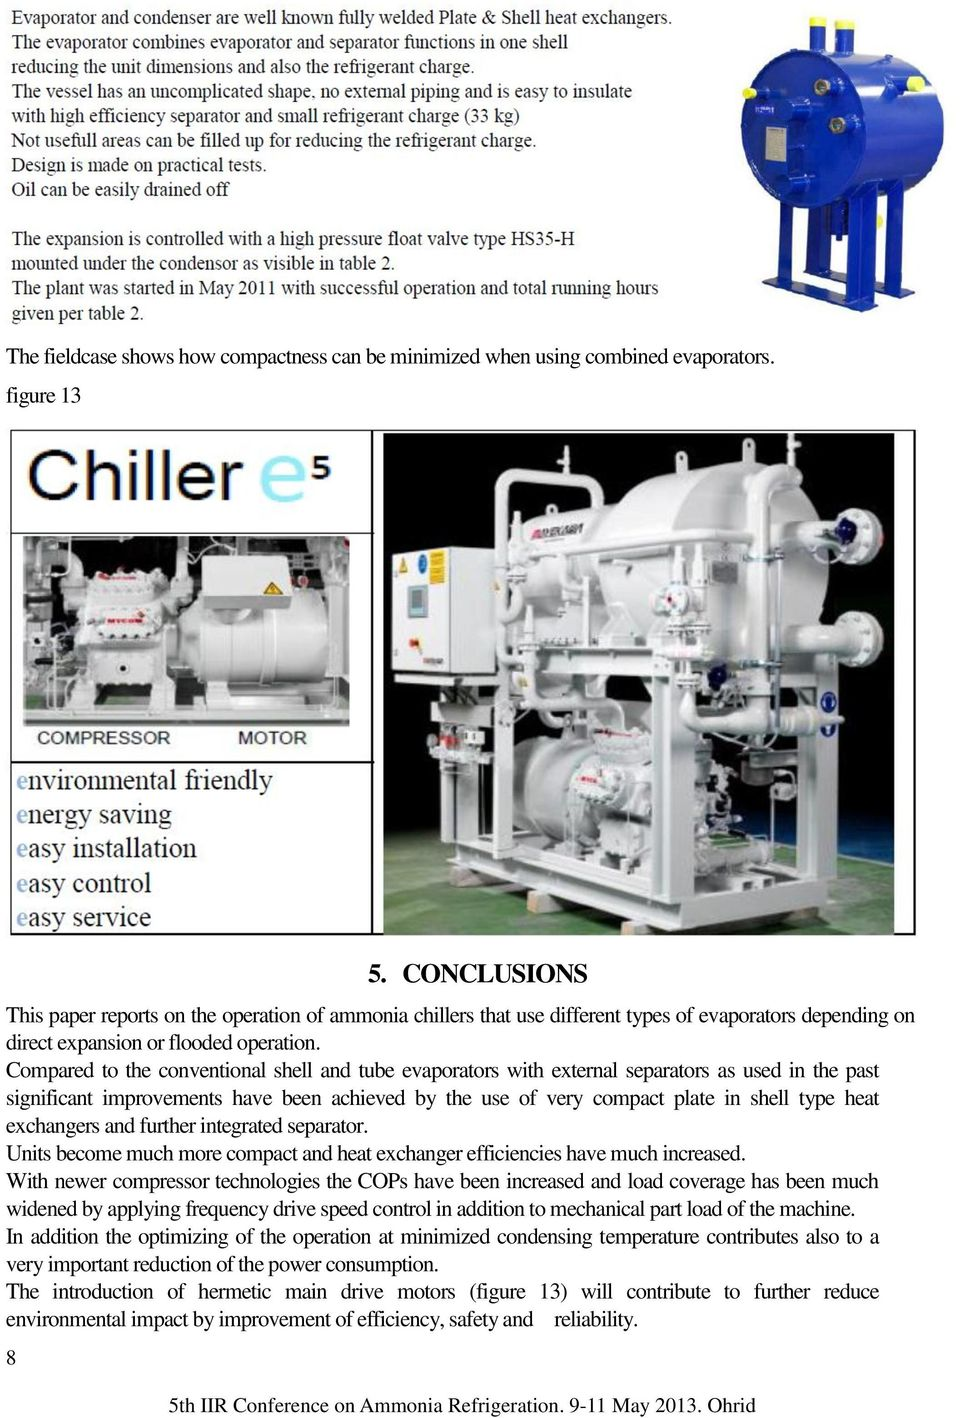 AMMONIA CHILLERS in Different Industrial plants in Switzerland